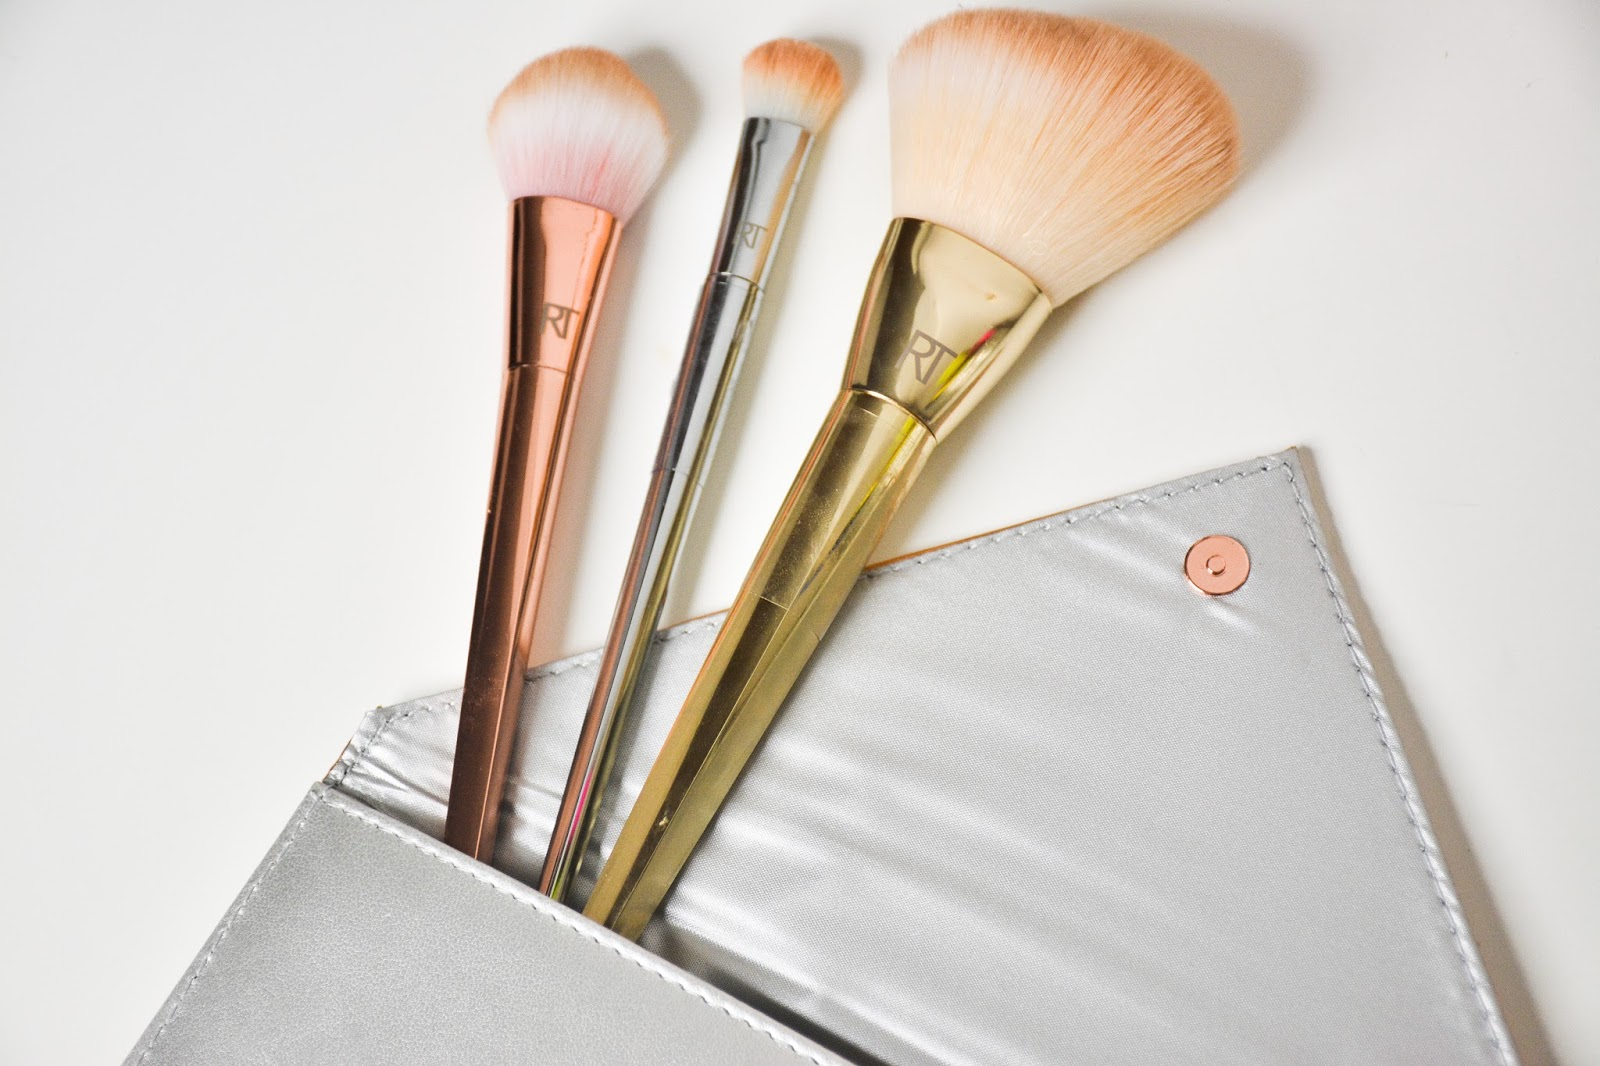 ulta makeup brushes. product details all c/o ulta beauty free shipping on orders $35 \u0026 over   ulta makeup brushes